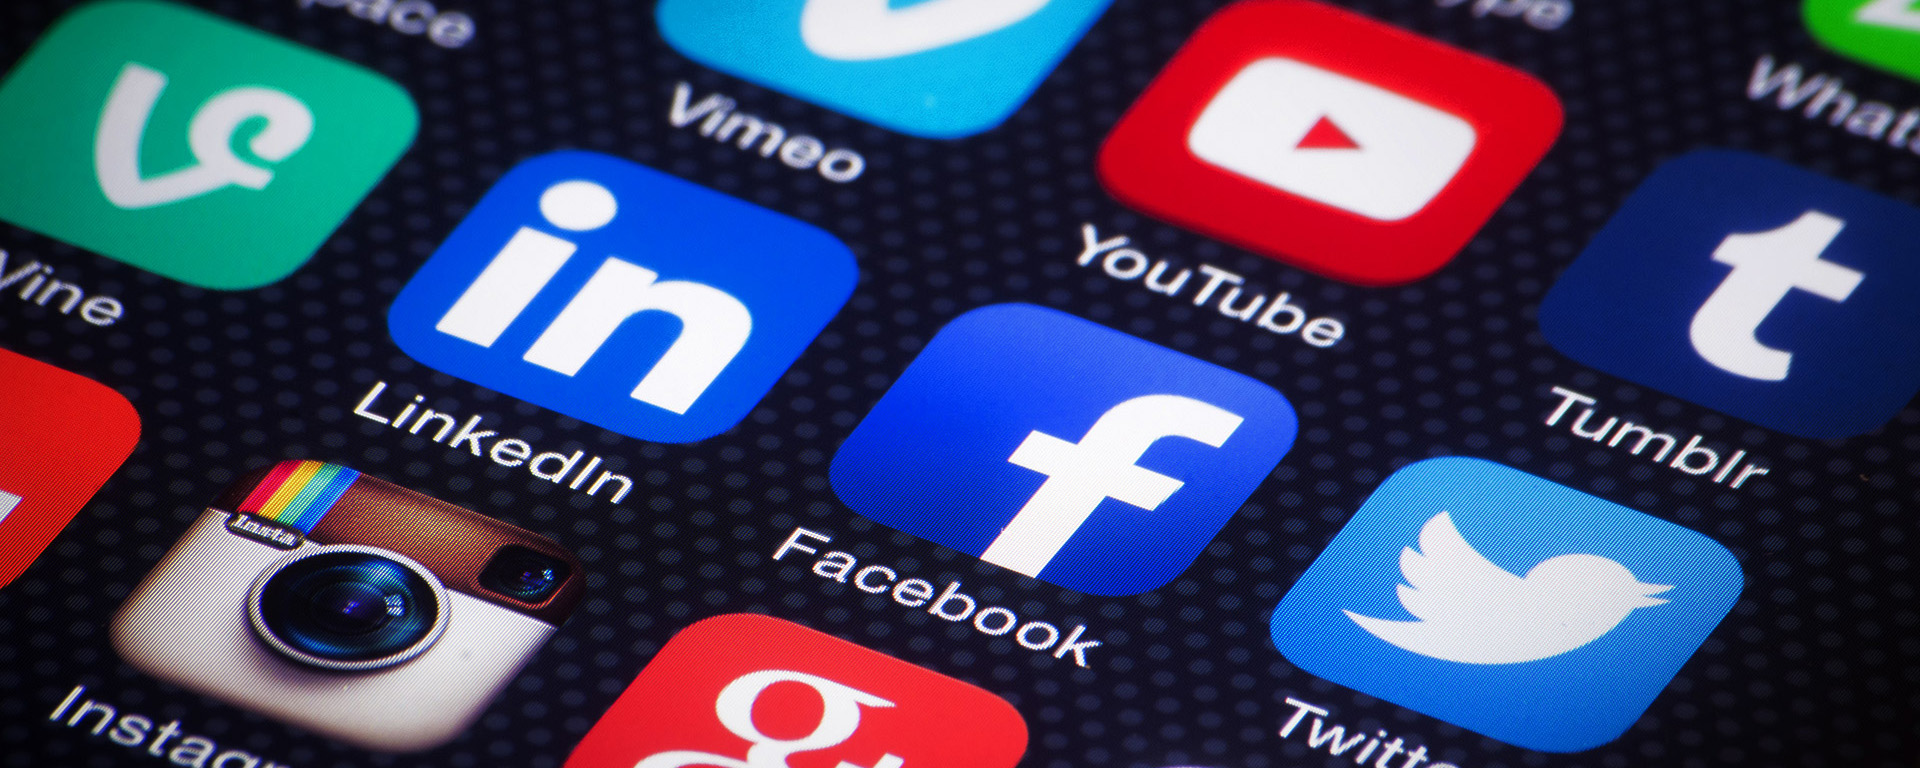 UK businesses shying away from social media, says research